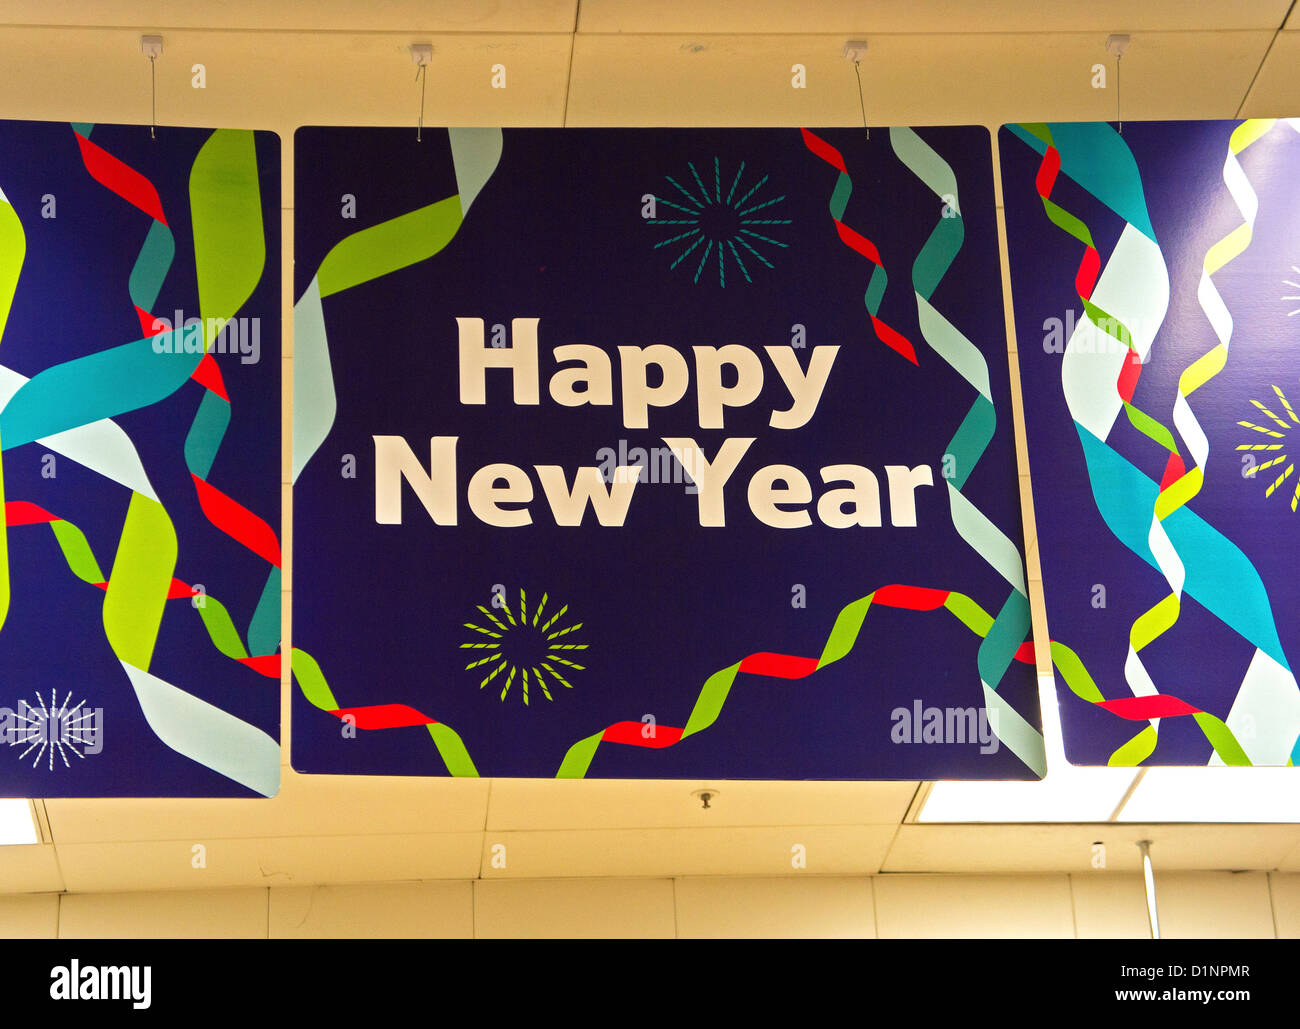 A Happy New Year poster - Stock Image